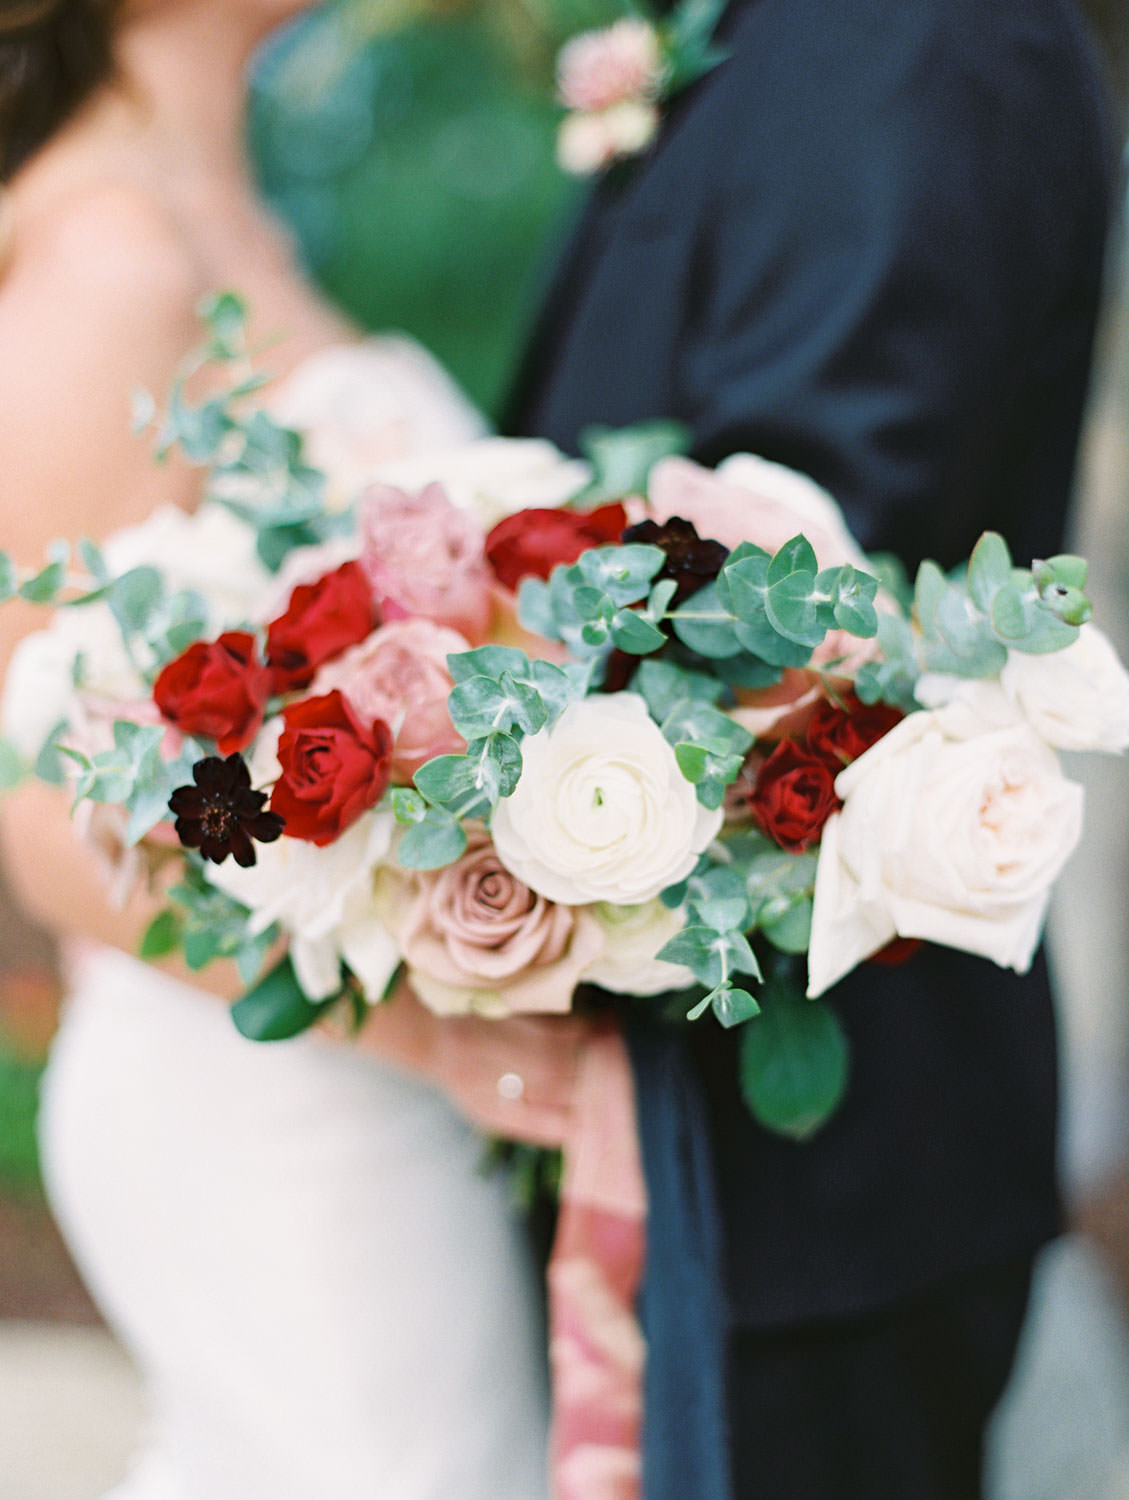 Bride in Anne Barge sweetheart gown with red ivory and mauve bouquet and groom in black tux at Green Acre Campus Pointe Wedding, film photo by Cavin Elizabeth Photography